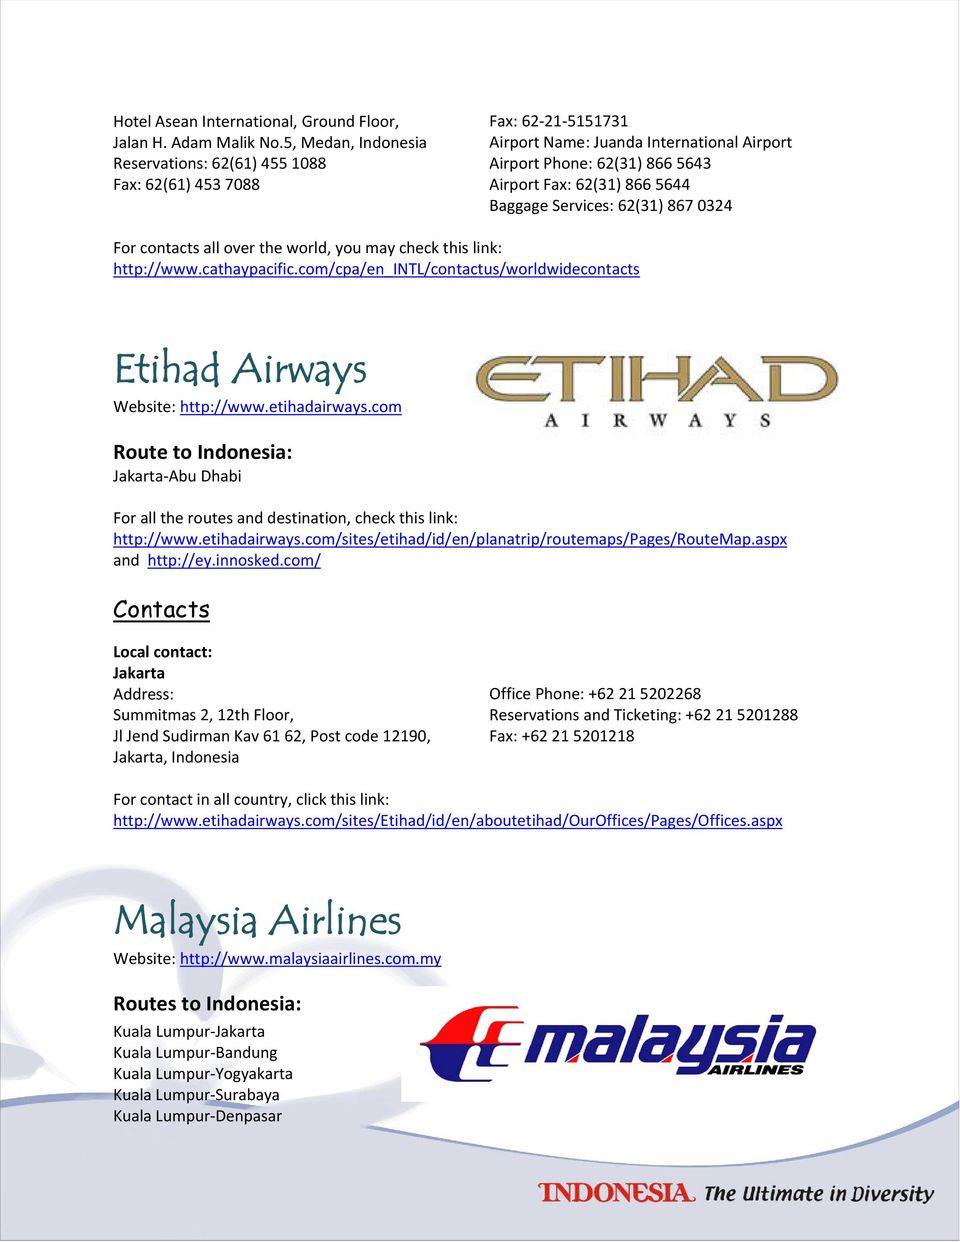 Baggage Services: 62(31) 867 0324 For contacts all over the world, you may check this link: HUhttp://www.cathaypacific.